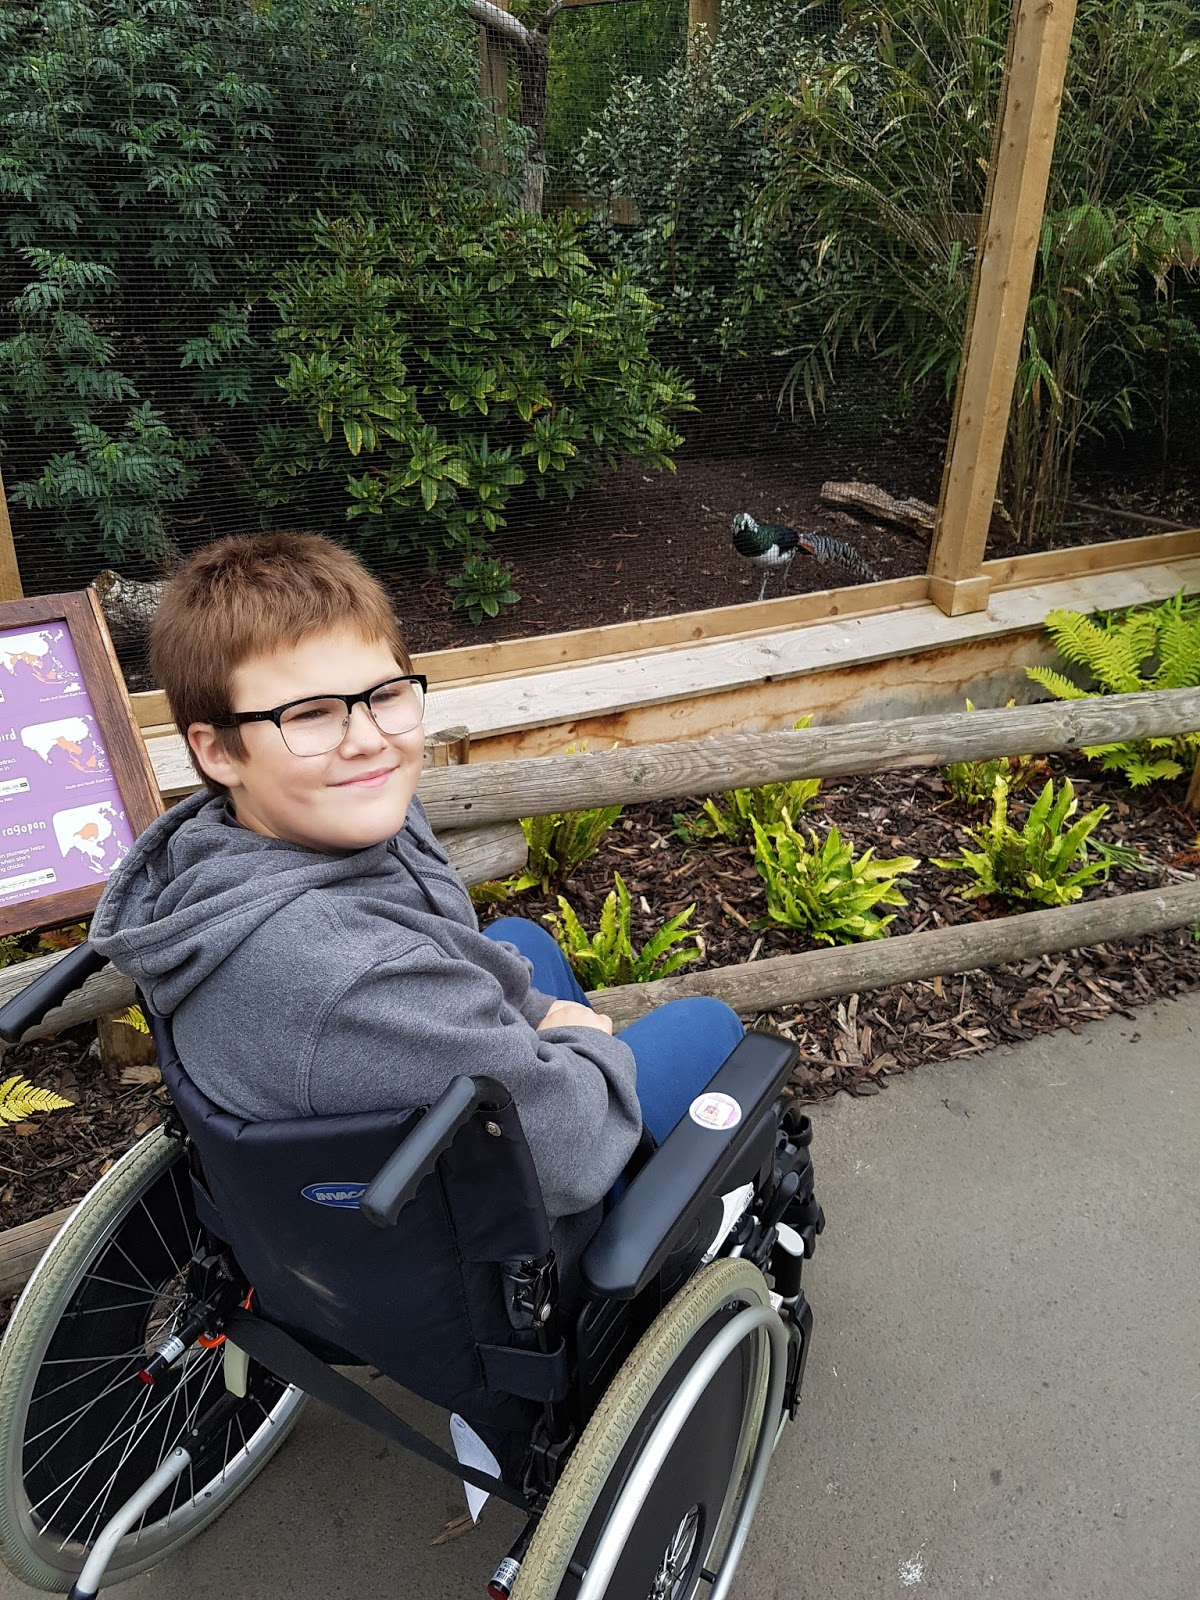 Ben in his wheelchair smiling at the camera with an enclosure behind (no animals can be seen) showing he can see even in his wheelchair.